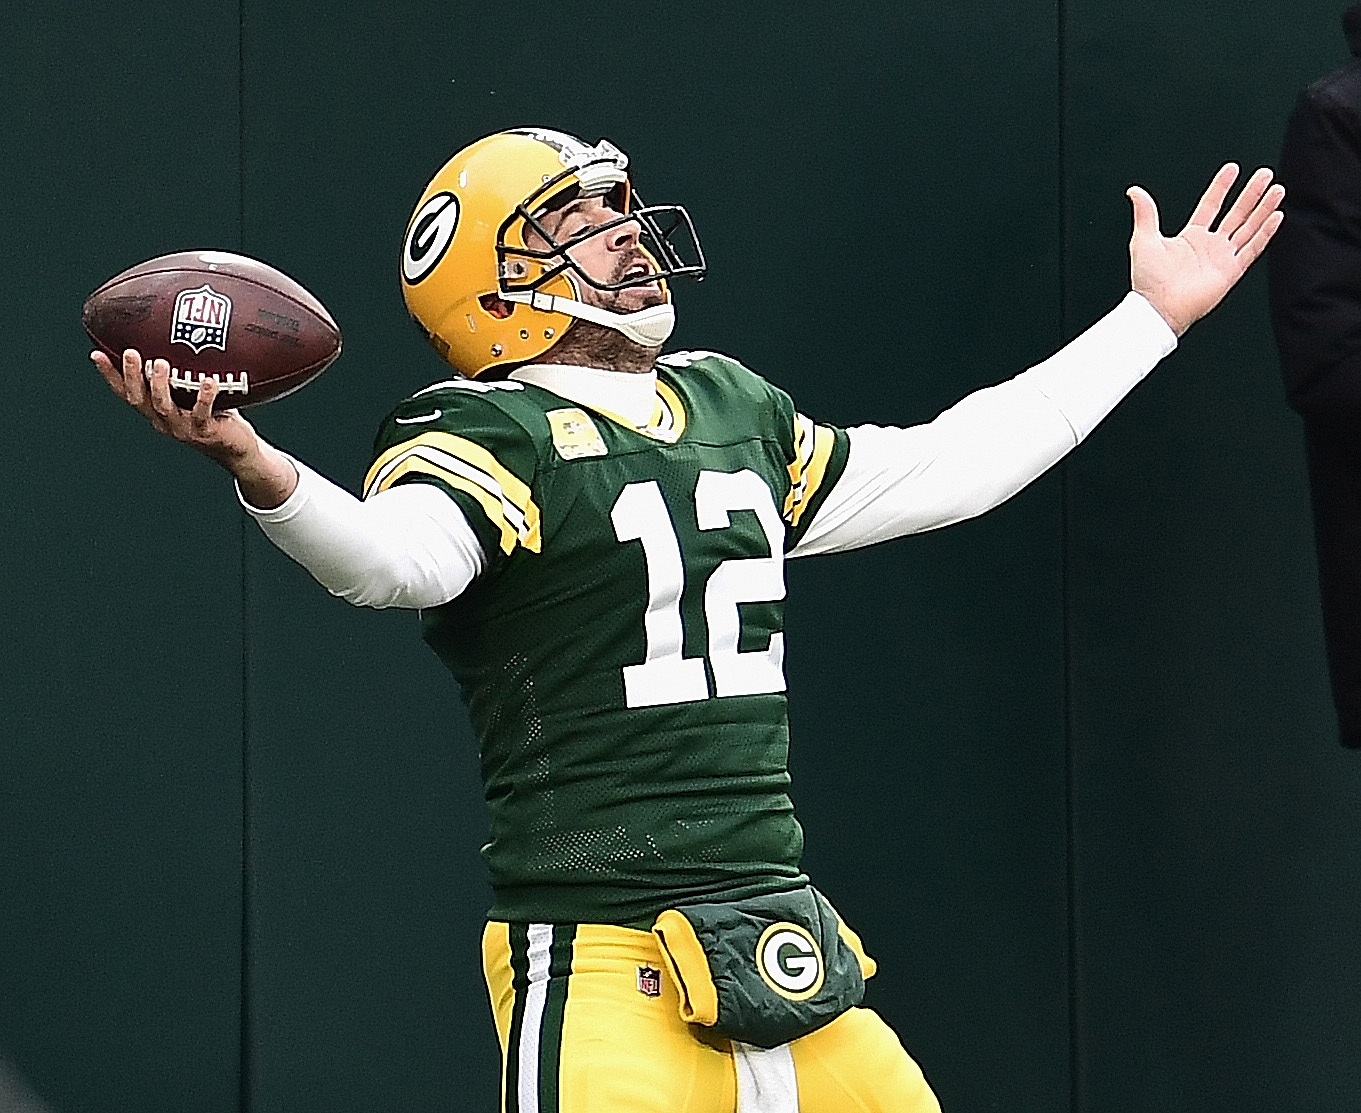 Aaron Rodgers #12 of the Green Bay Packers celebrates scoring his first running touchdown of the season in the 2nd quarter against the Jacksonville Jaguars at Lambeau Field on November 15, 2020 in Green Bay, Wisconsin.